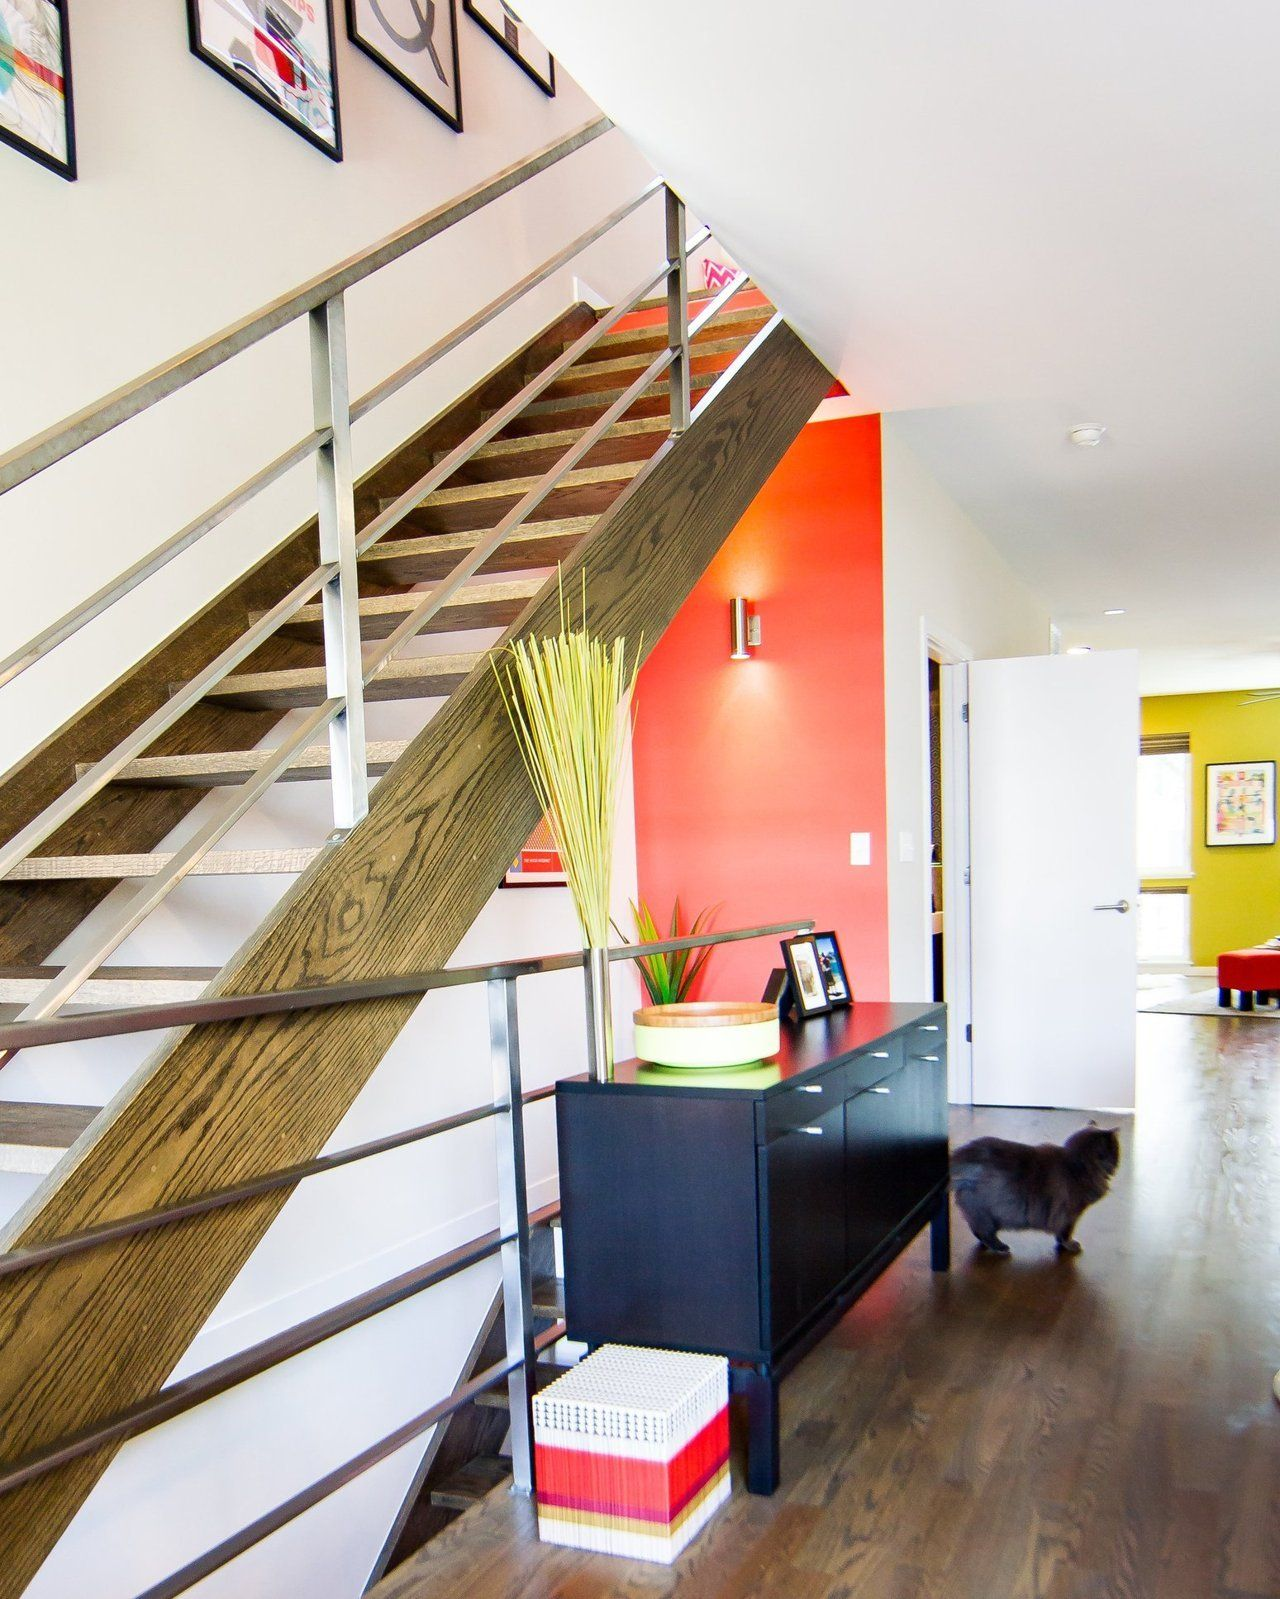 Staircase - Amy & Todd's Mod Chicago Home